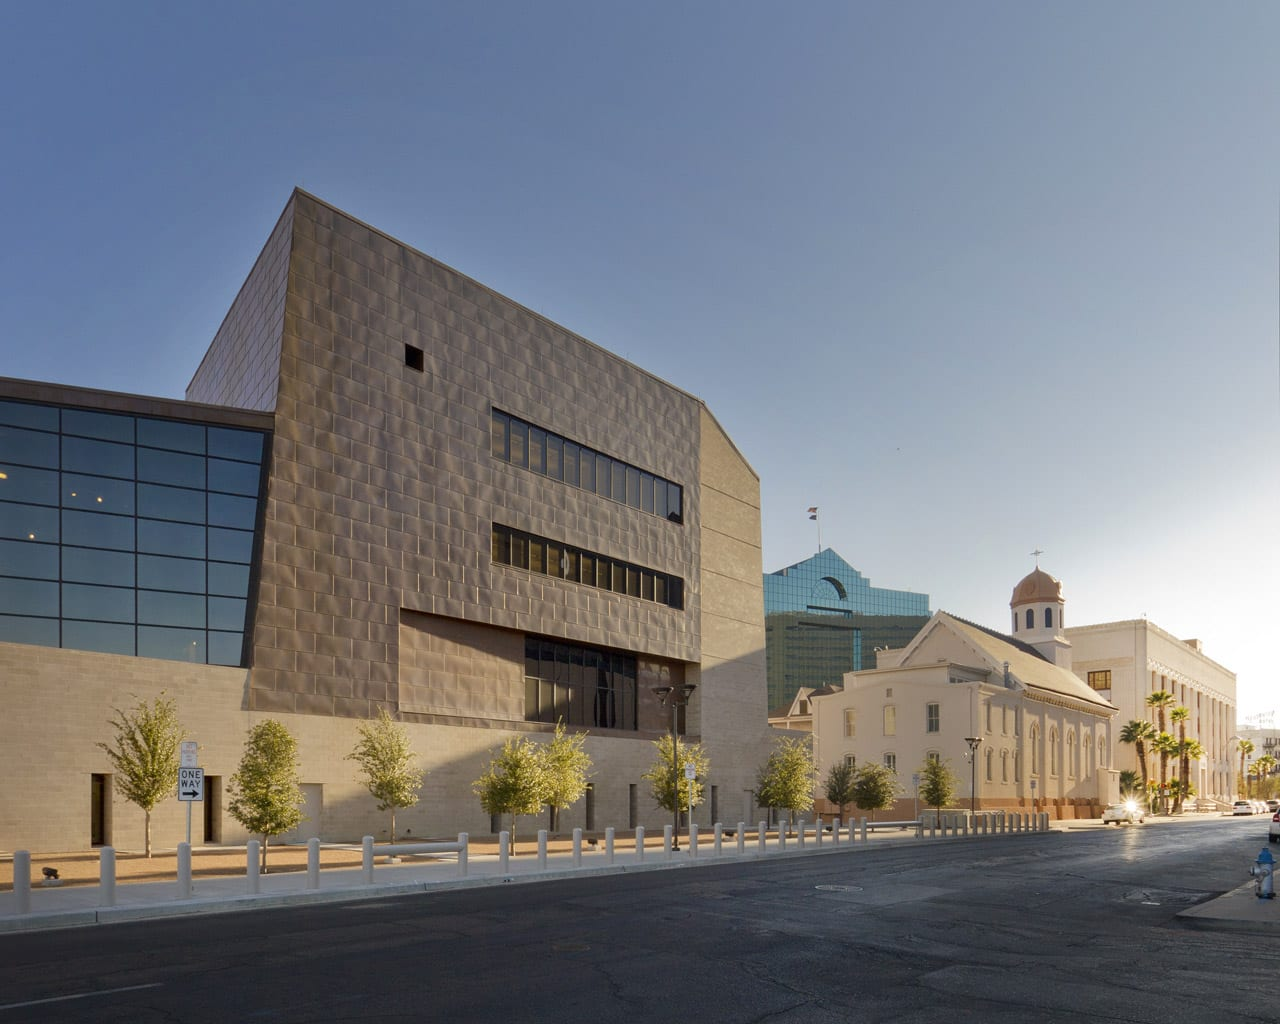 North elevation of the El Paso Federal Courthouse.